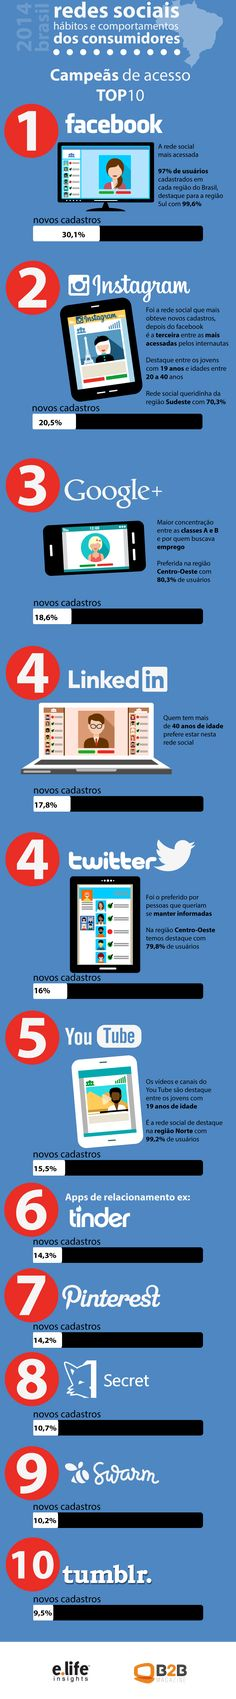 [infográfico] As redes sociais preferidas do brasileiro | Mkt Sem Gravata  via:marketingsemgravata  #marketindigital #brasil #modernistablog